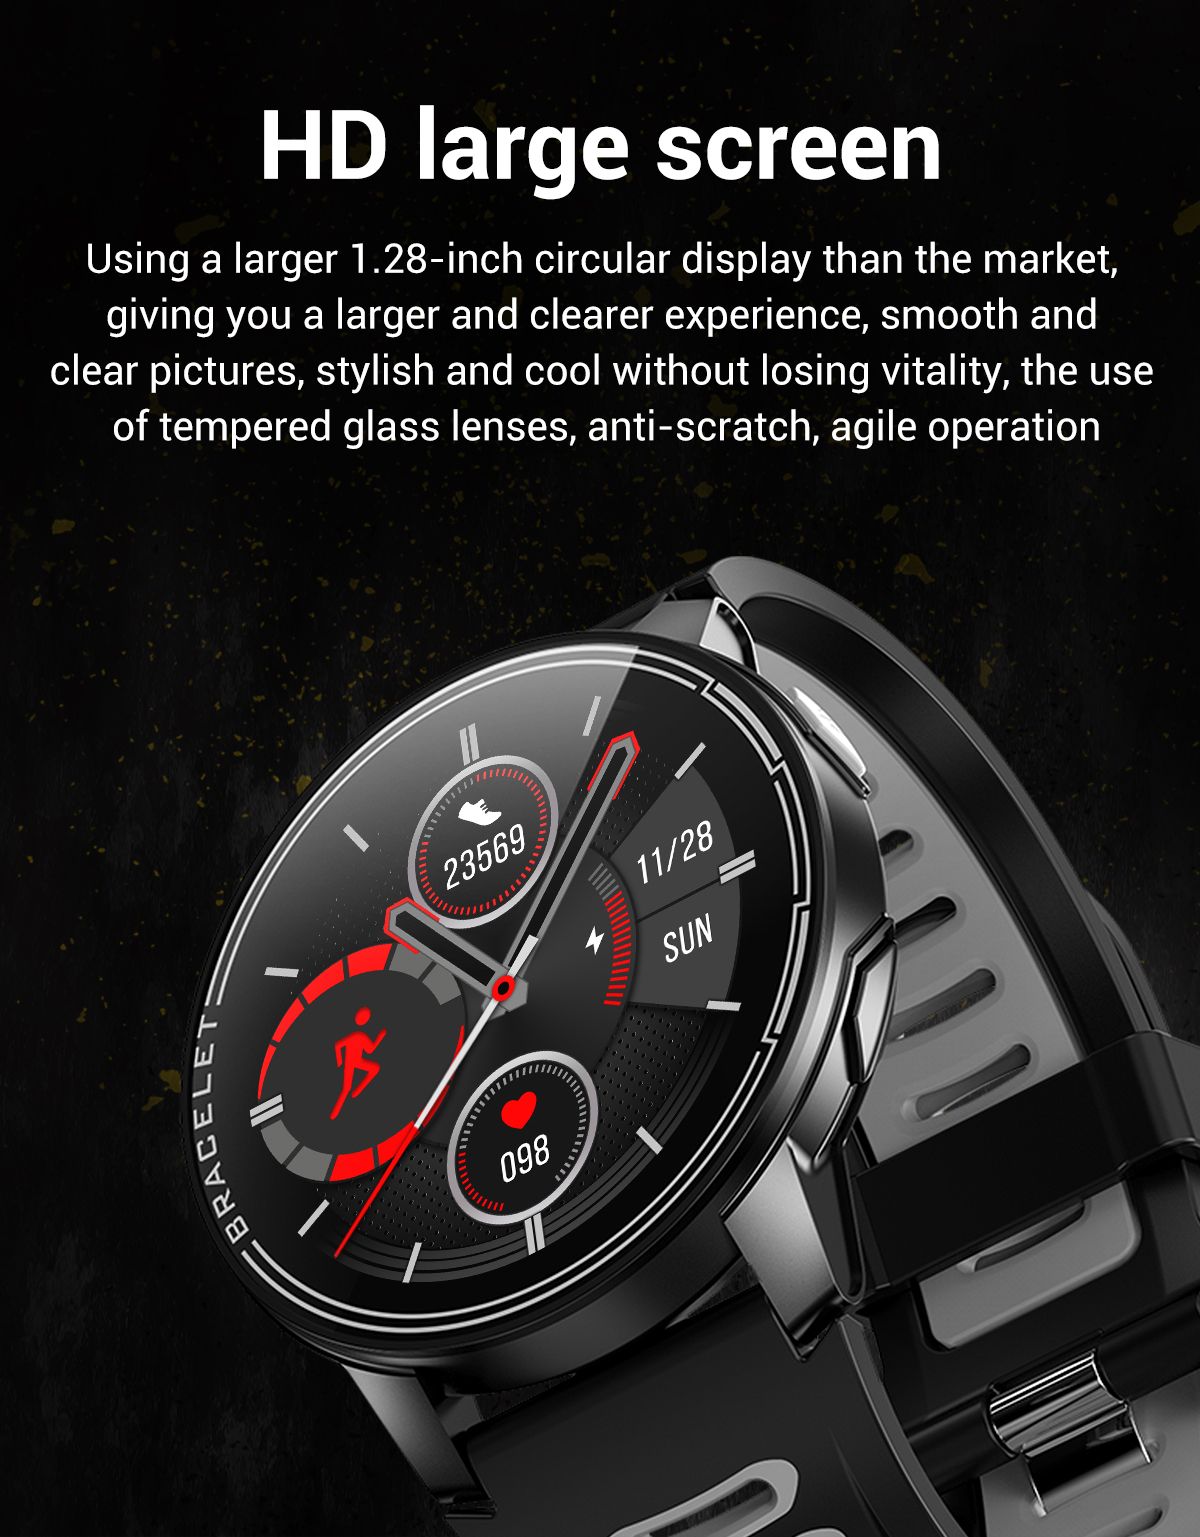 H8ff6558c186140cb94a9f8847965858dN 2020 New L6 Smart Watch IP68 Waterproof Sport Men Women Bluetooth Smartwatch Fitness Tracker Heart Rate Monitor For Android IOS